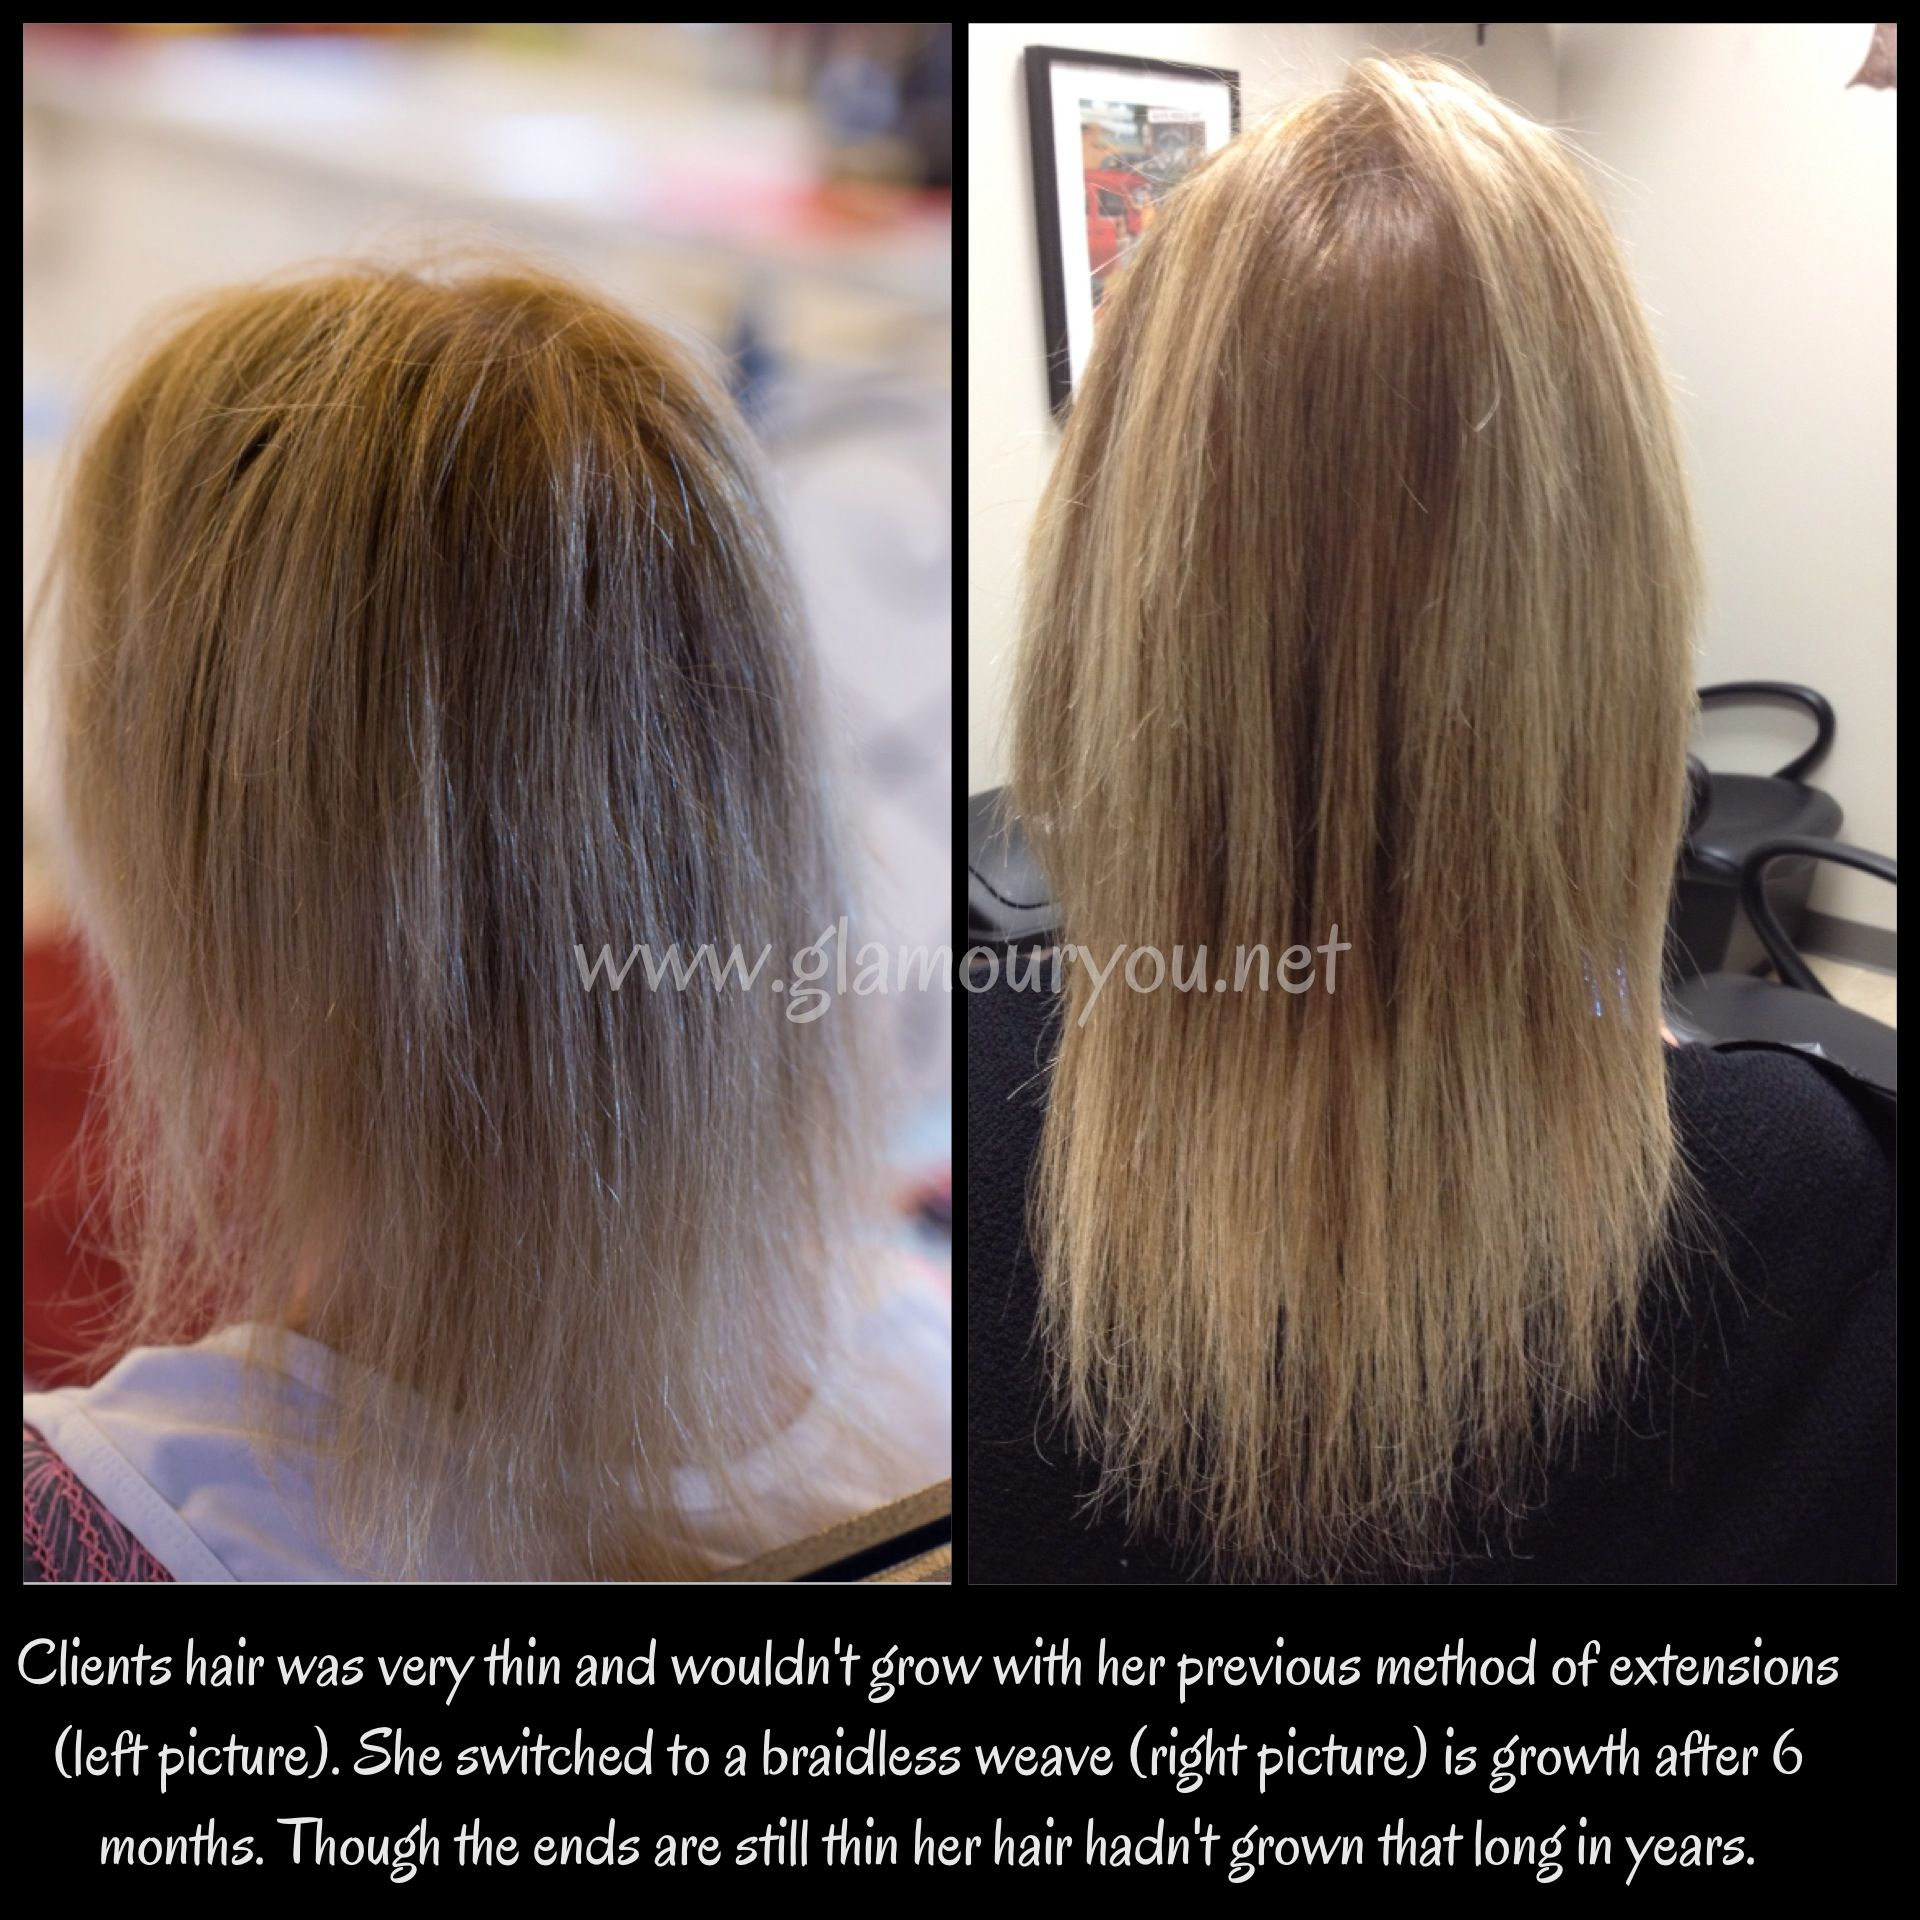 Hair growth with extensions weaves glamouryou my work hair growth with extensions weaves glamouryou pmusecretfo Gallery